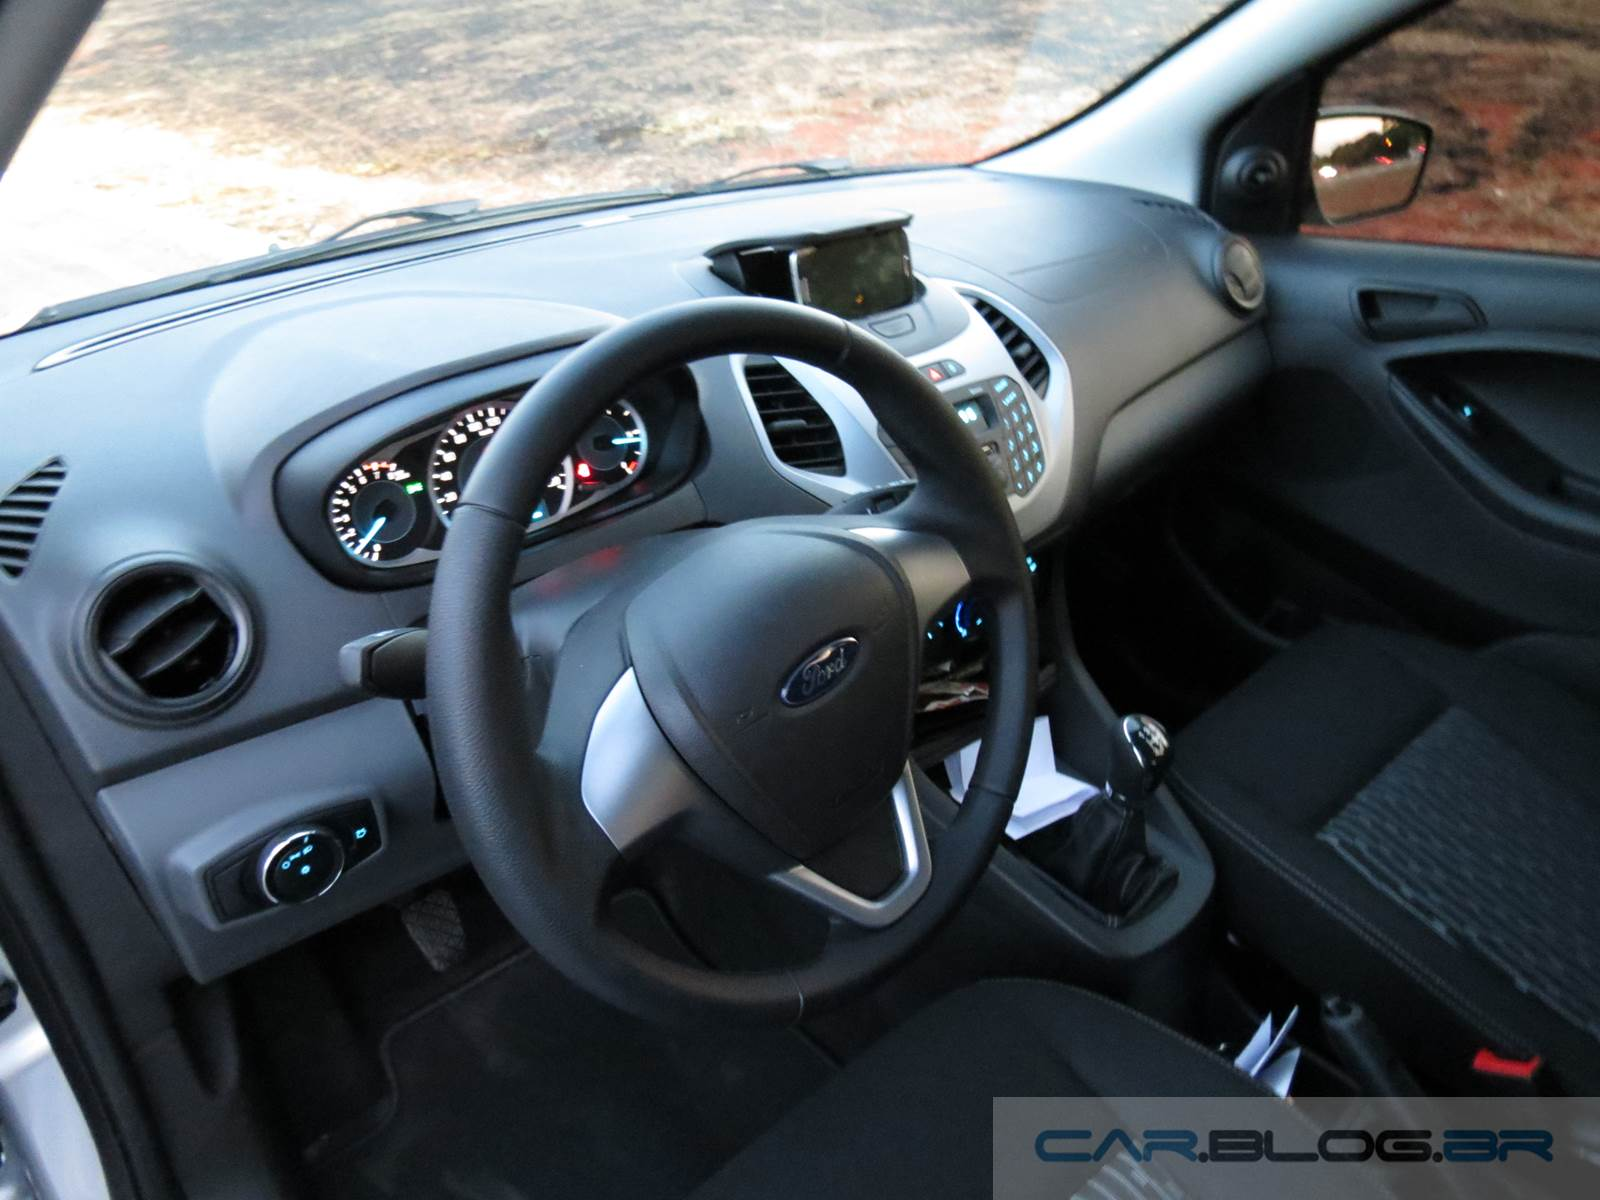 Ford Ka SE 1.0 - interior